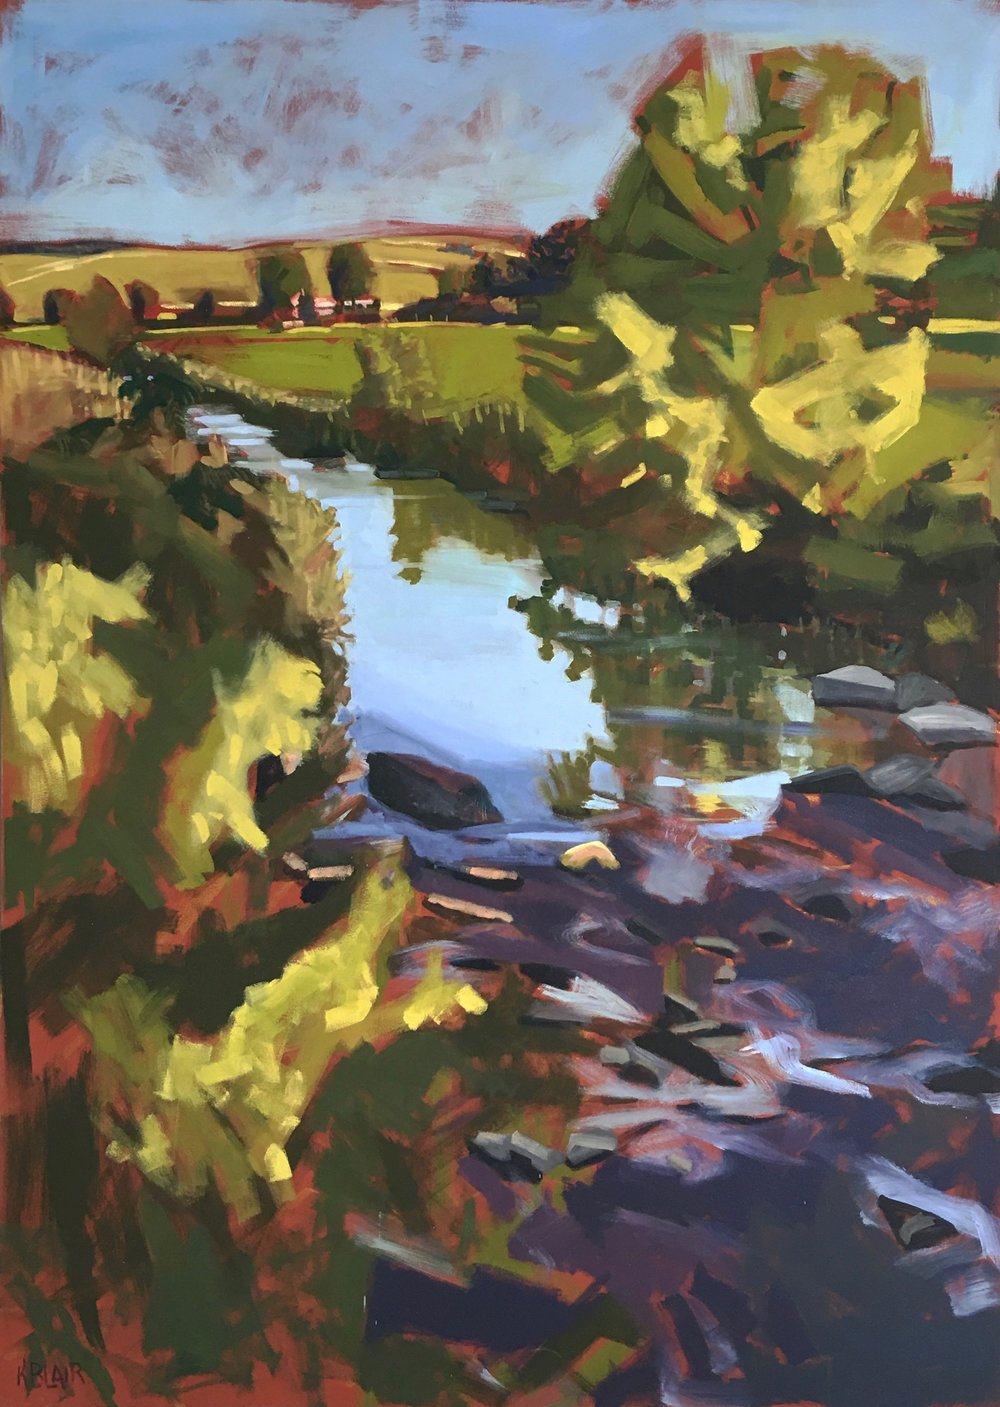 Stream Farm VA, 84x60